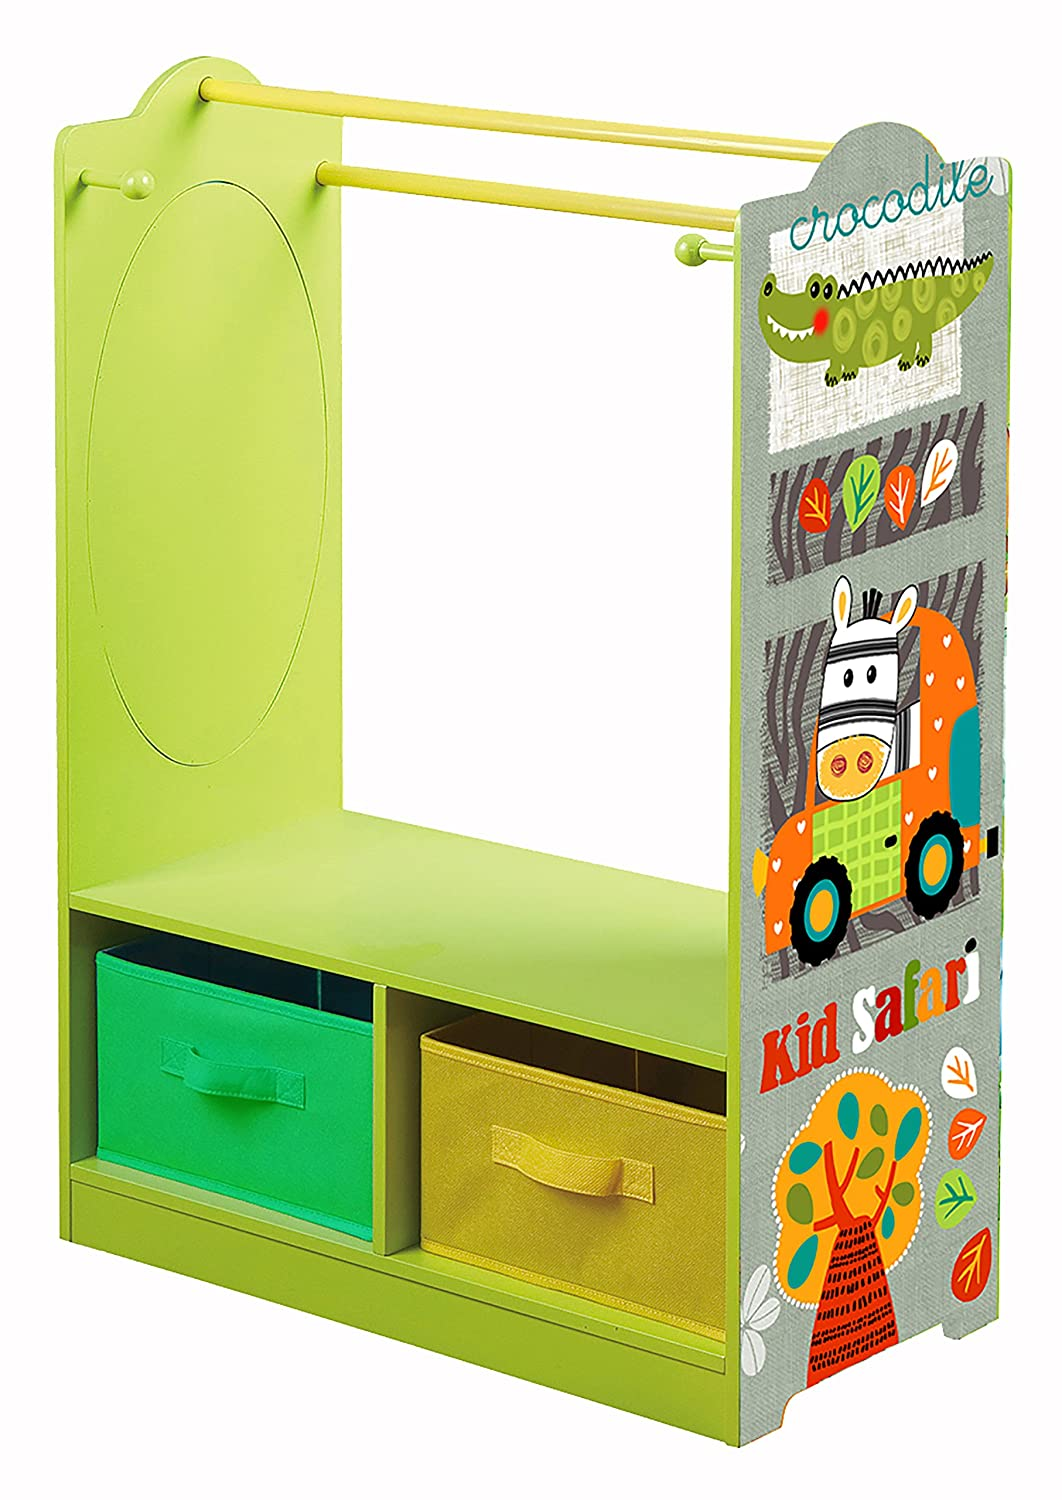 Liberty House Juguetes Kid Safari Dress Up de Almacenamiento, Madera, Verde/Naranja